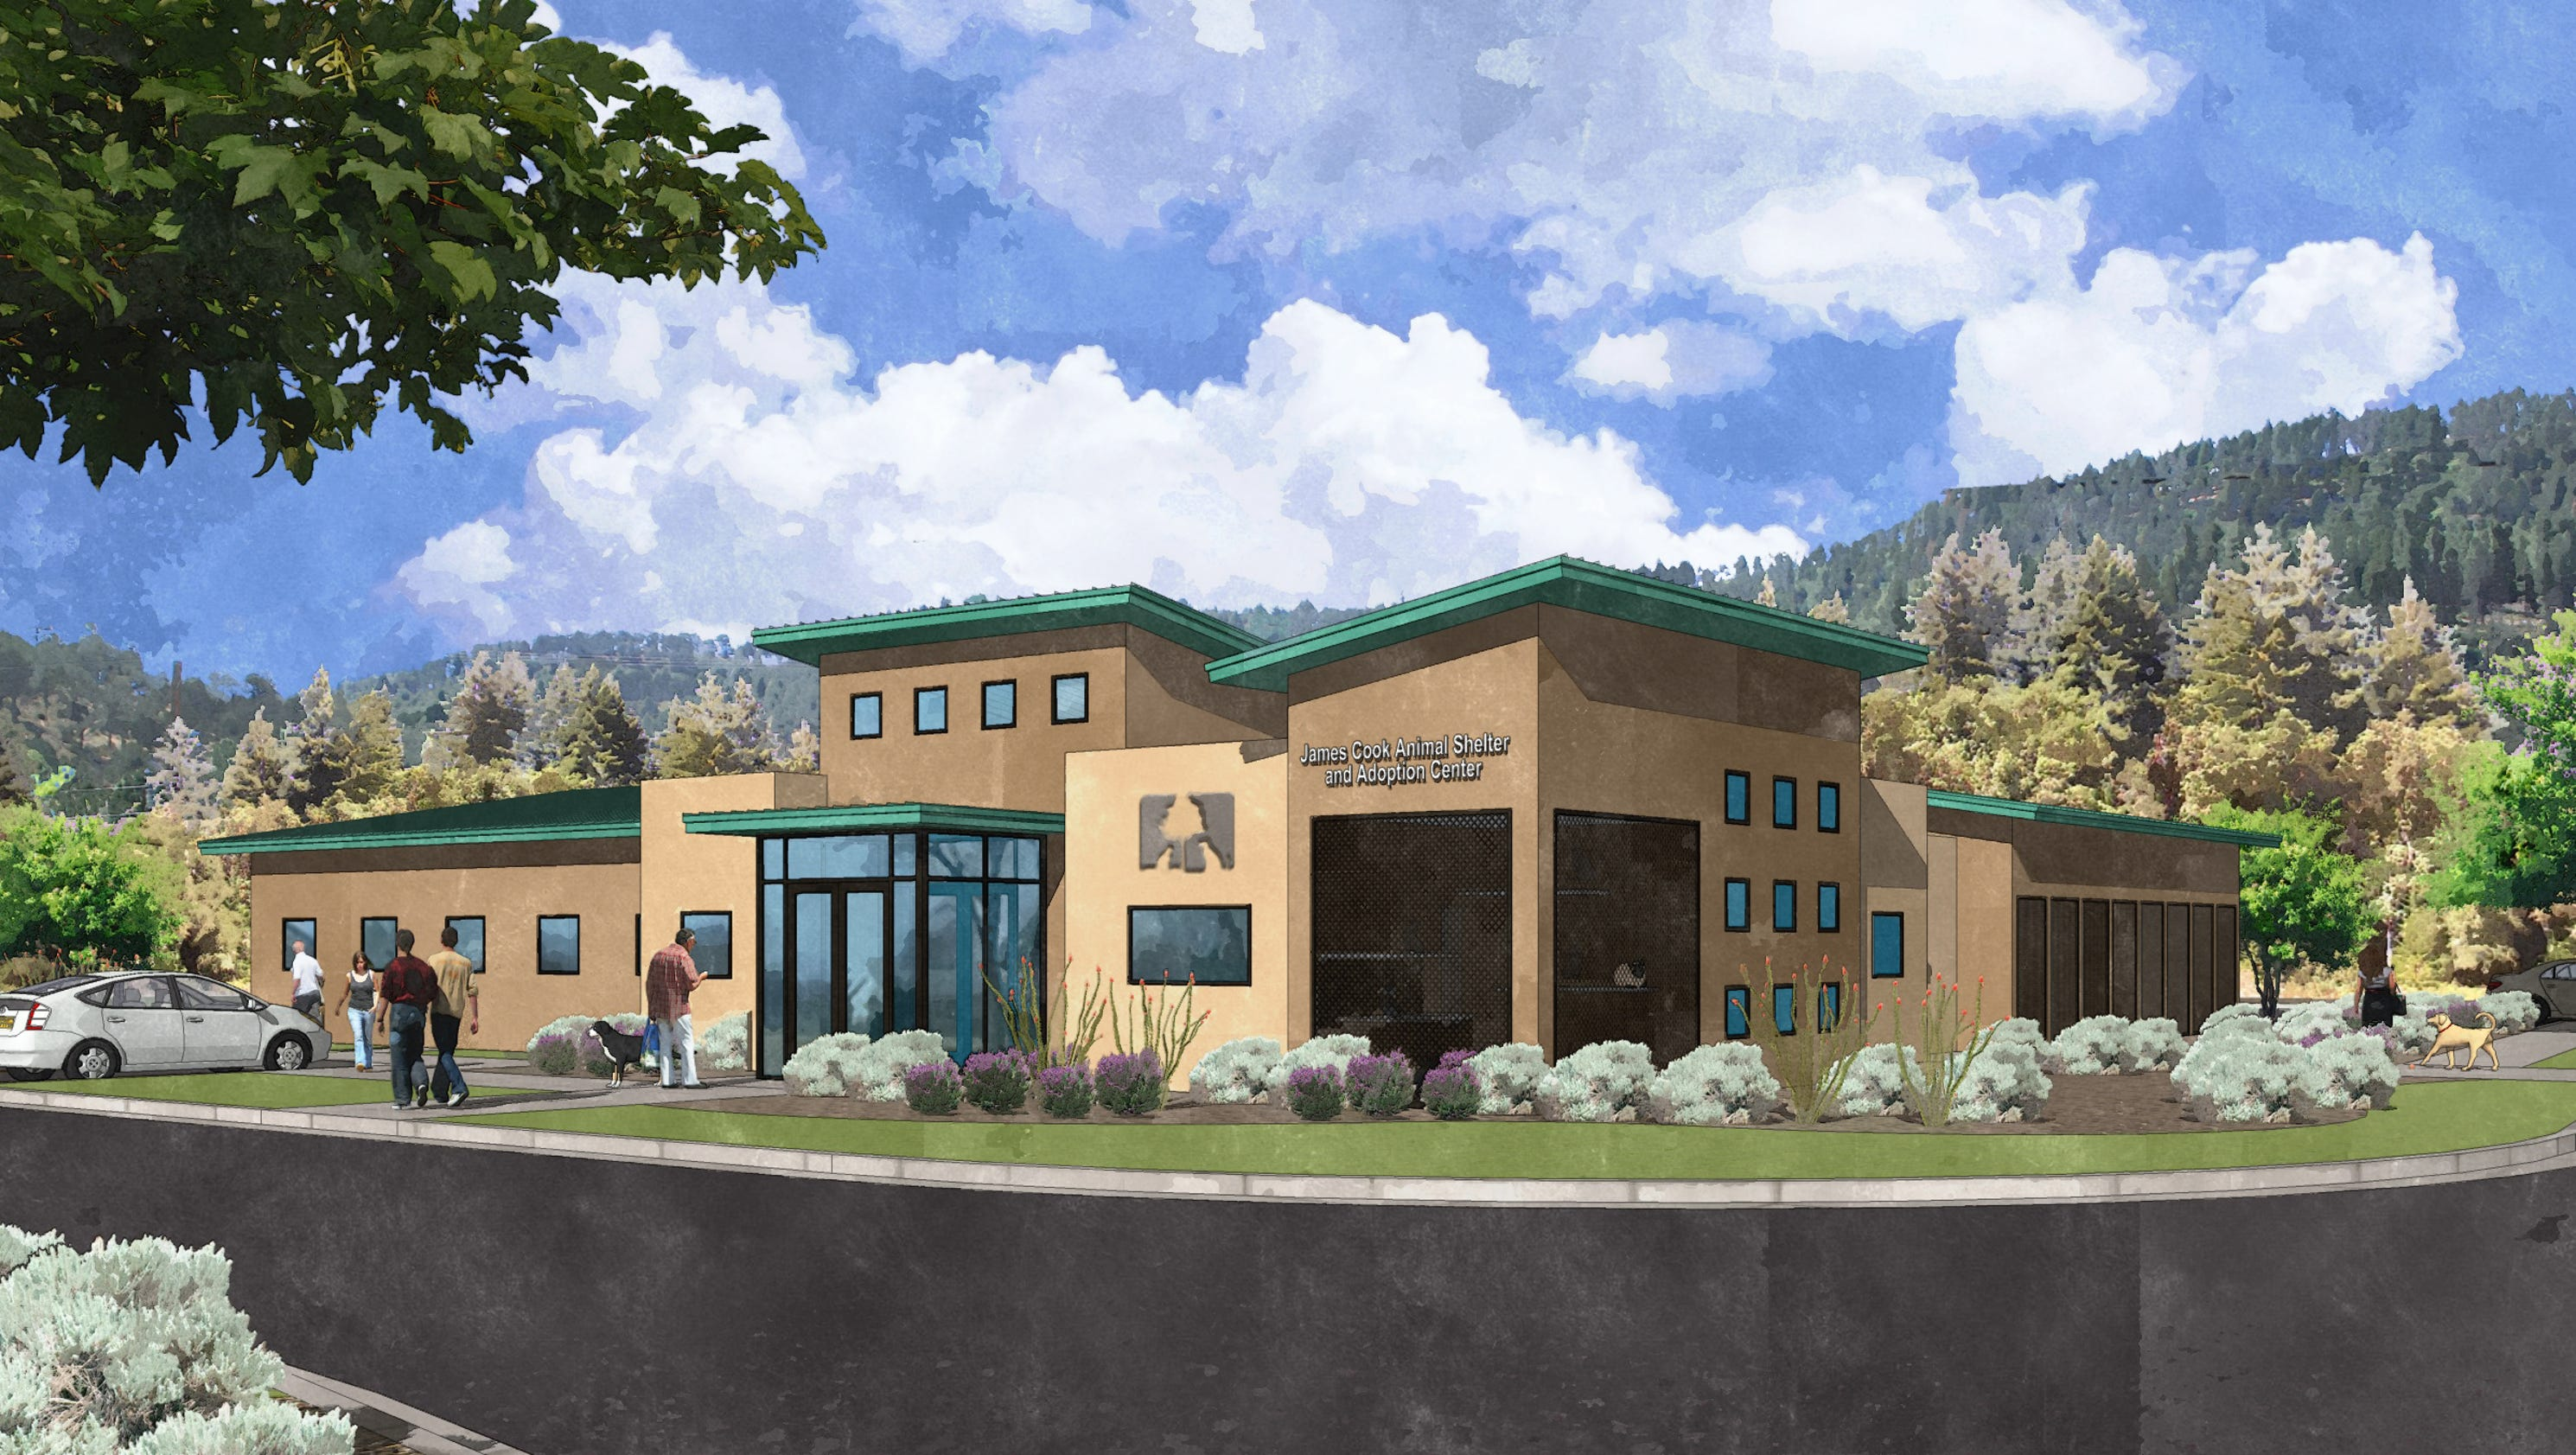 Humane Society Officials Say Plans Are Ready To Build New